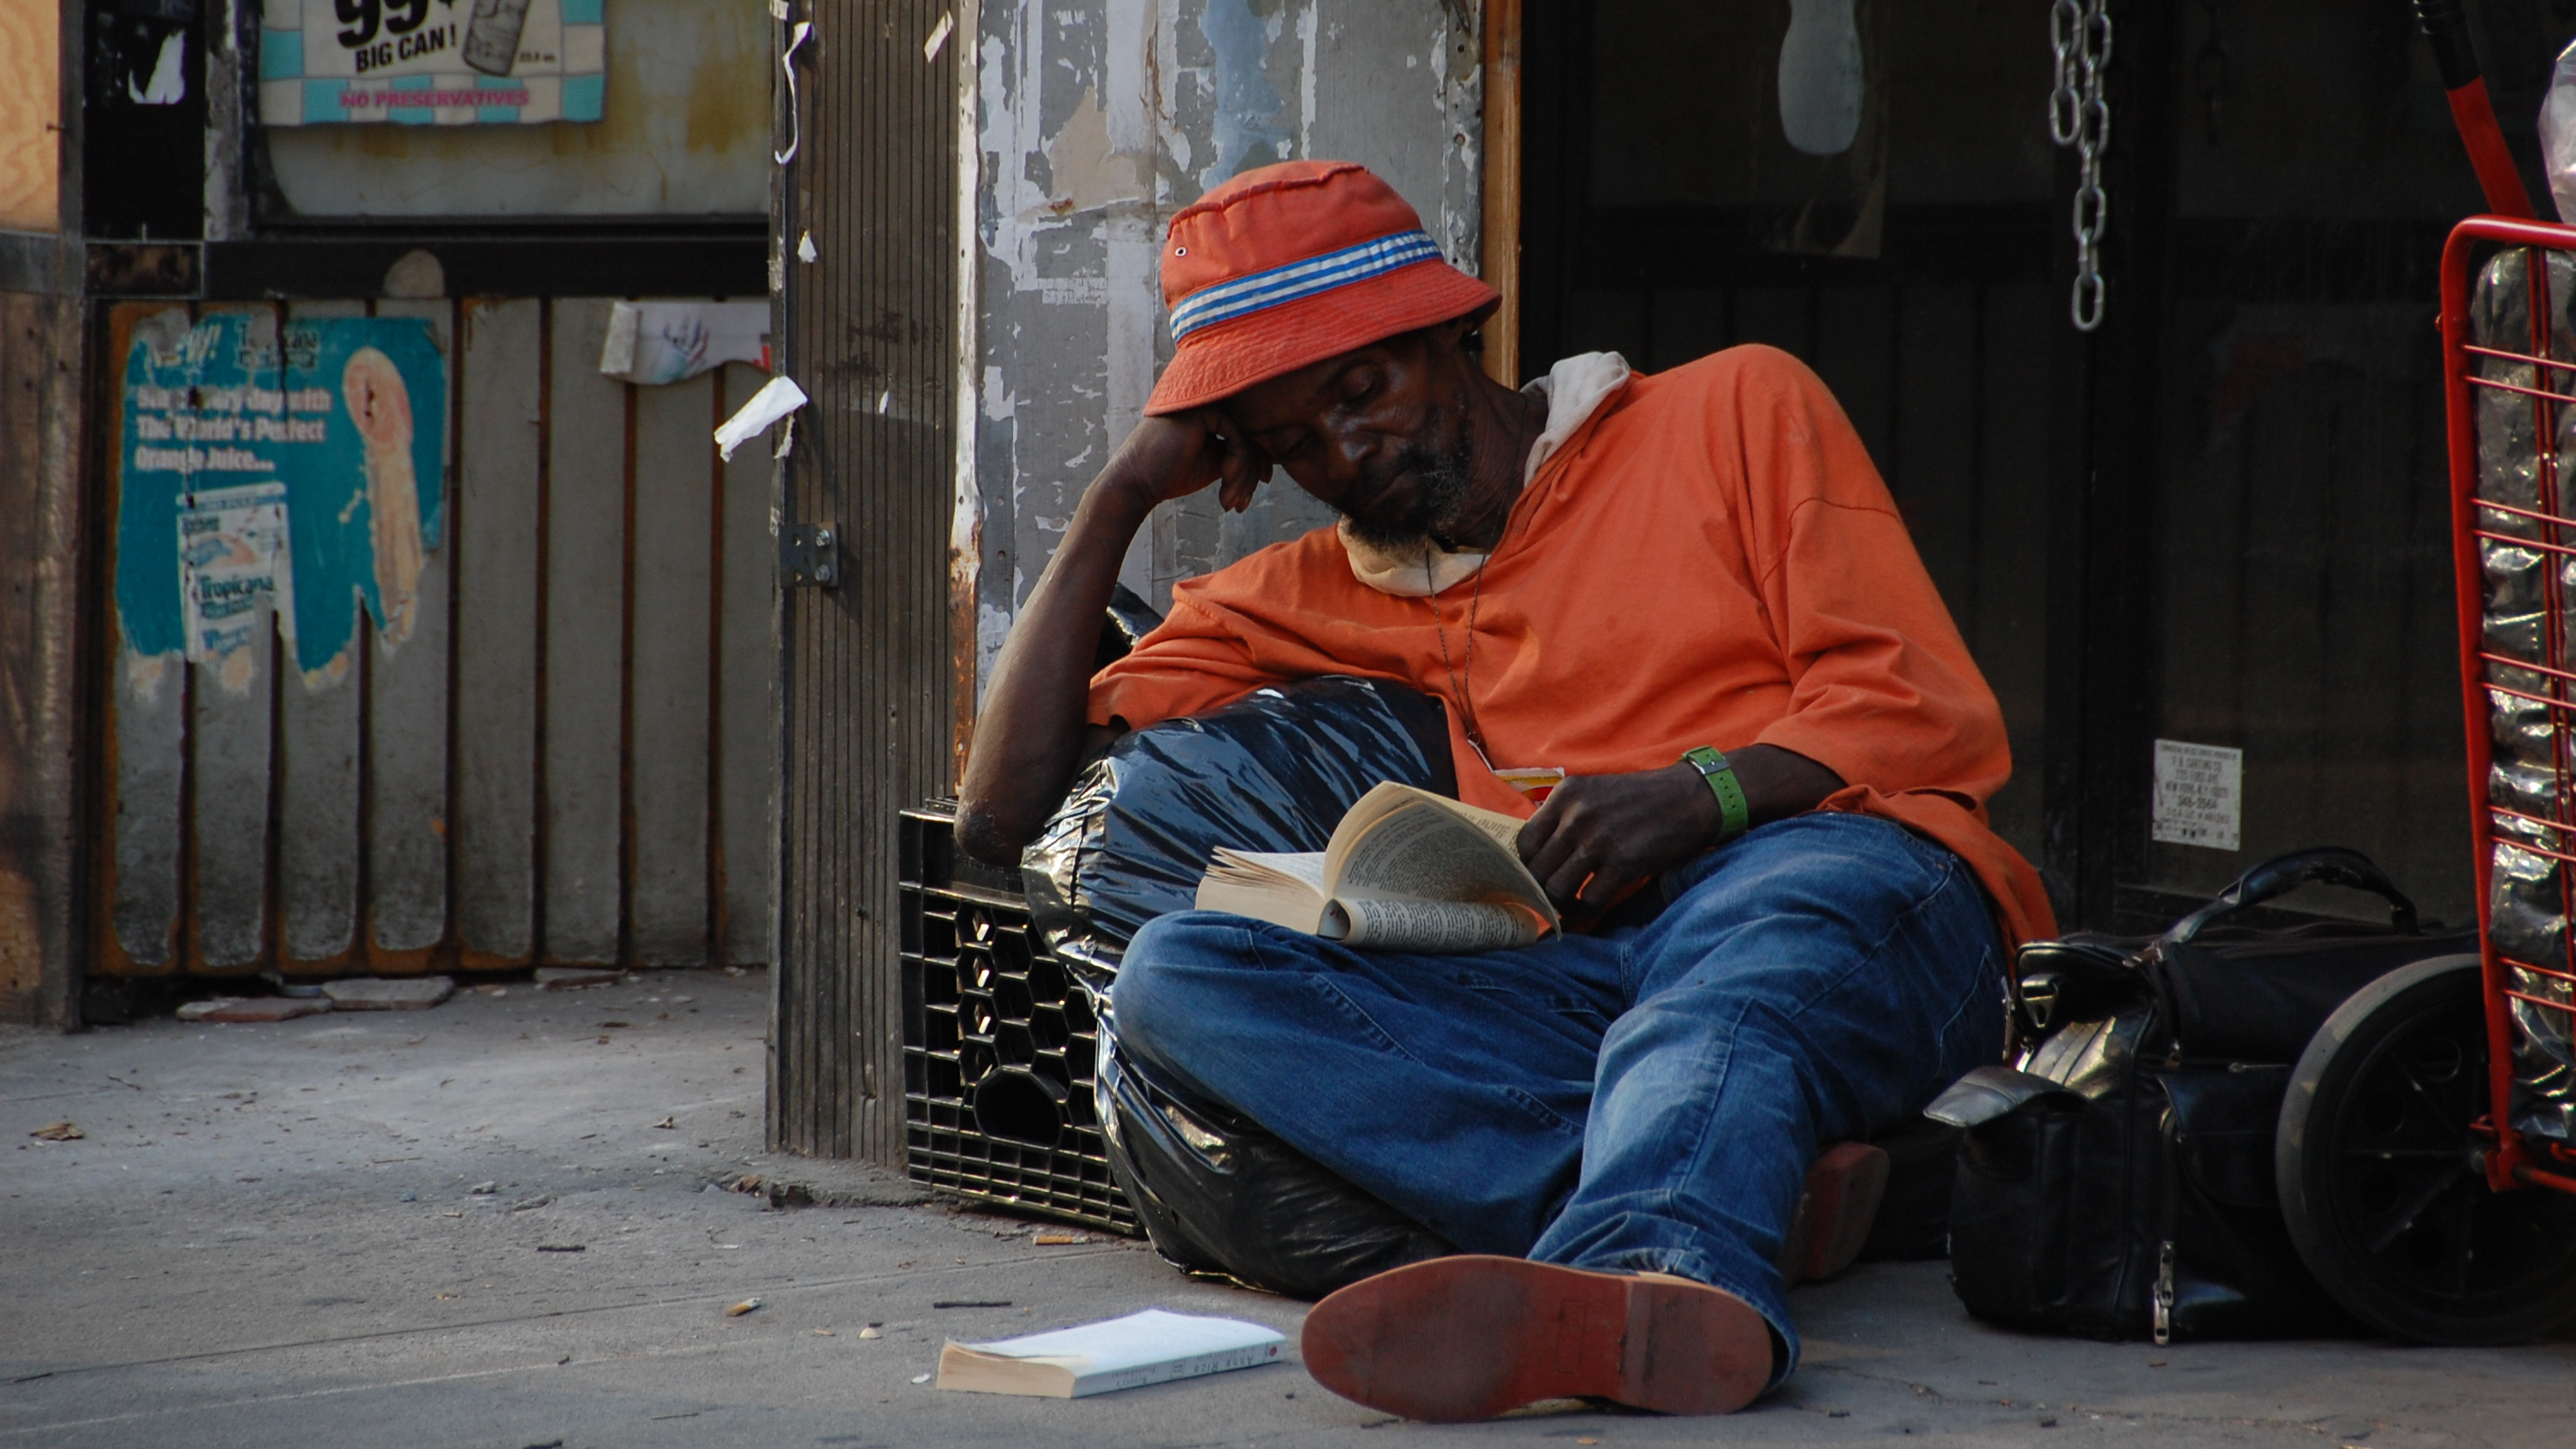 Reading on Broadway, Oct 6, 2007, by Michele Markel Connors (3008x1692)